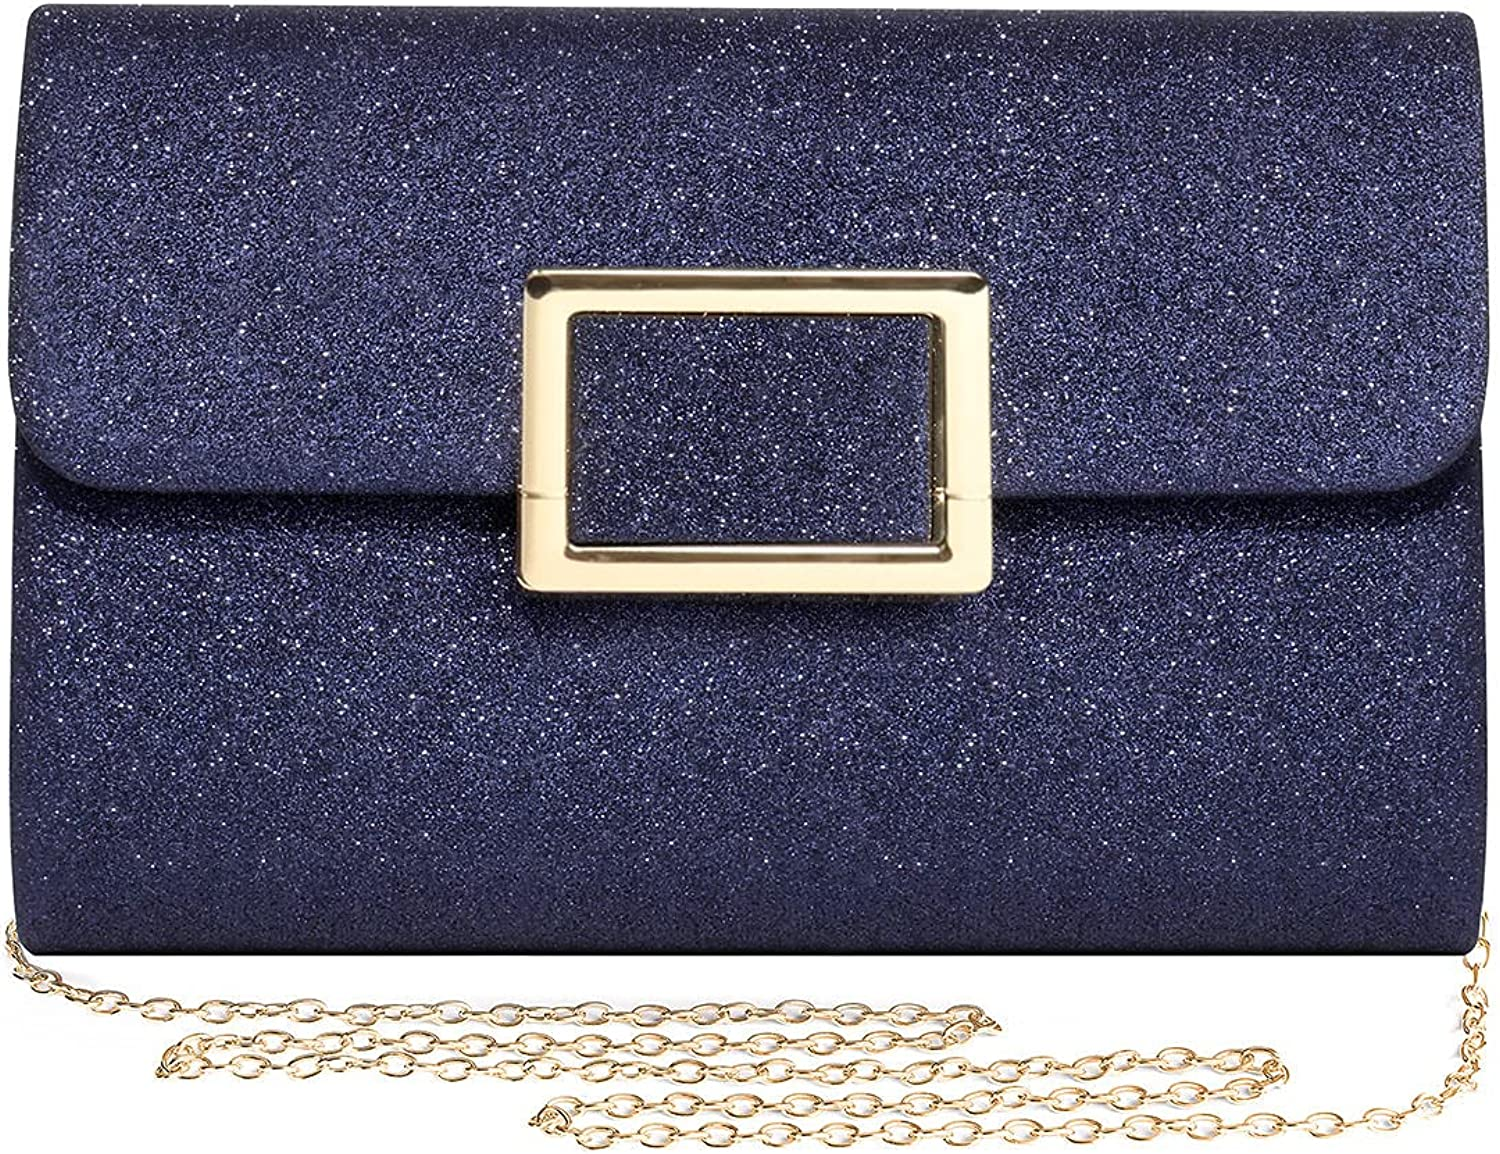 Mulian LilY Sparkly Glitter Clutch Purse Evening Bag With Detachable Chain Party Prom Clutch Bag